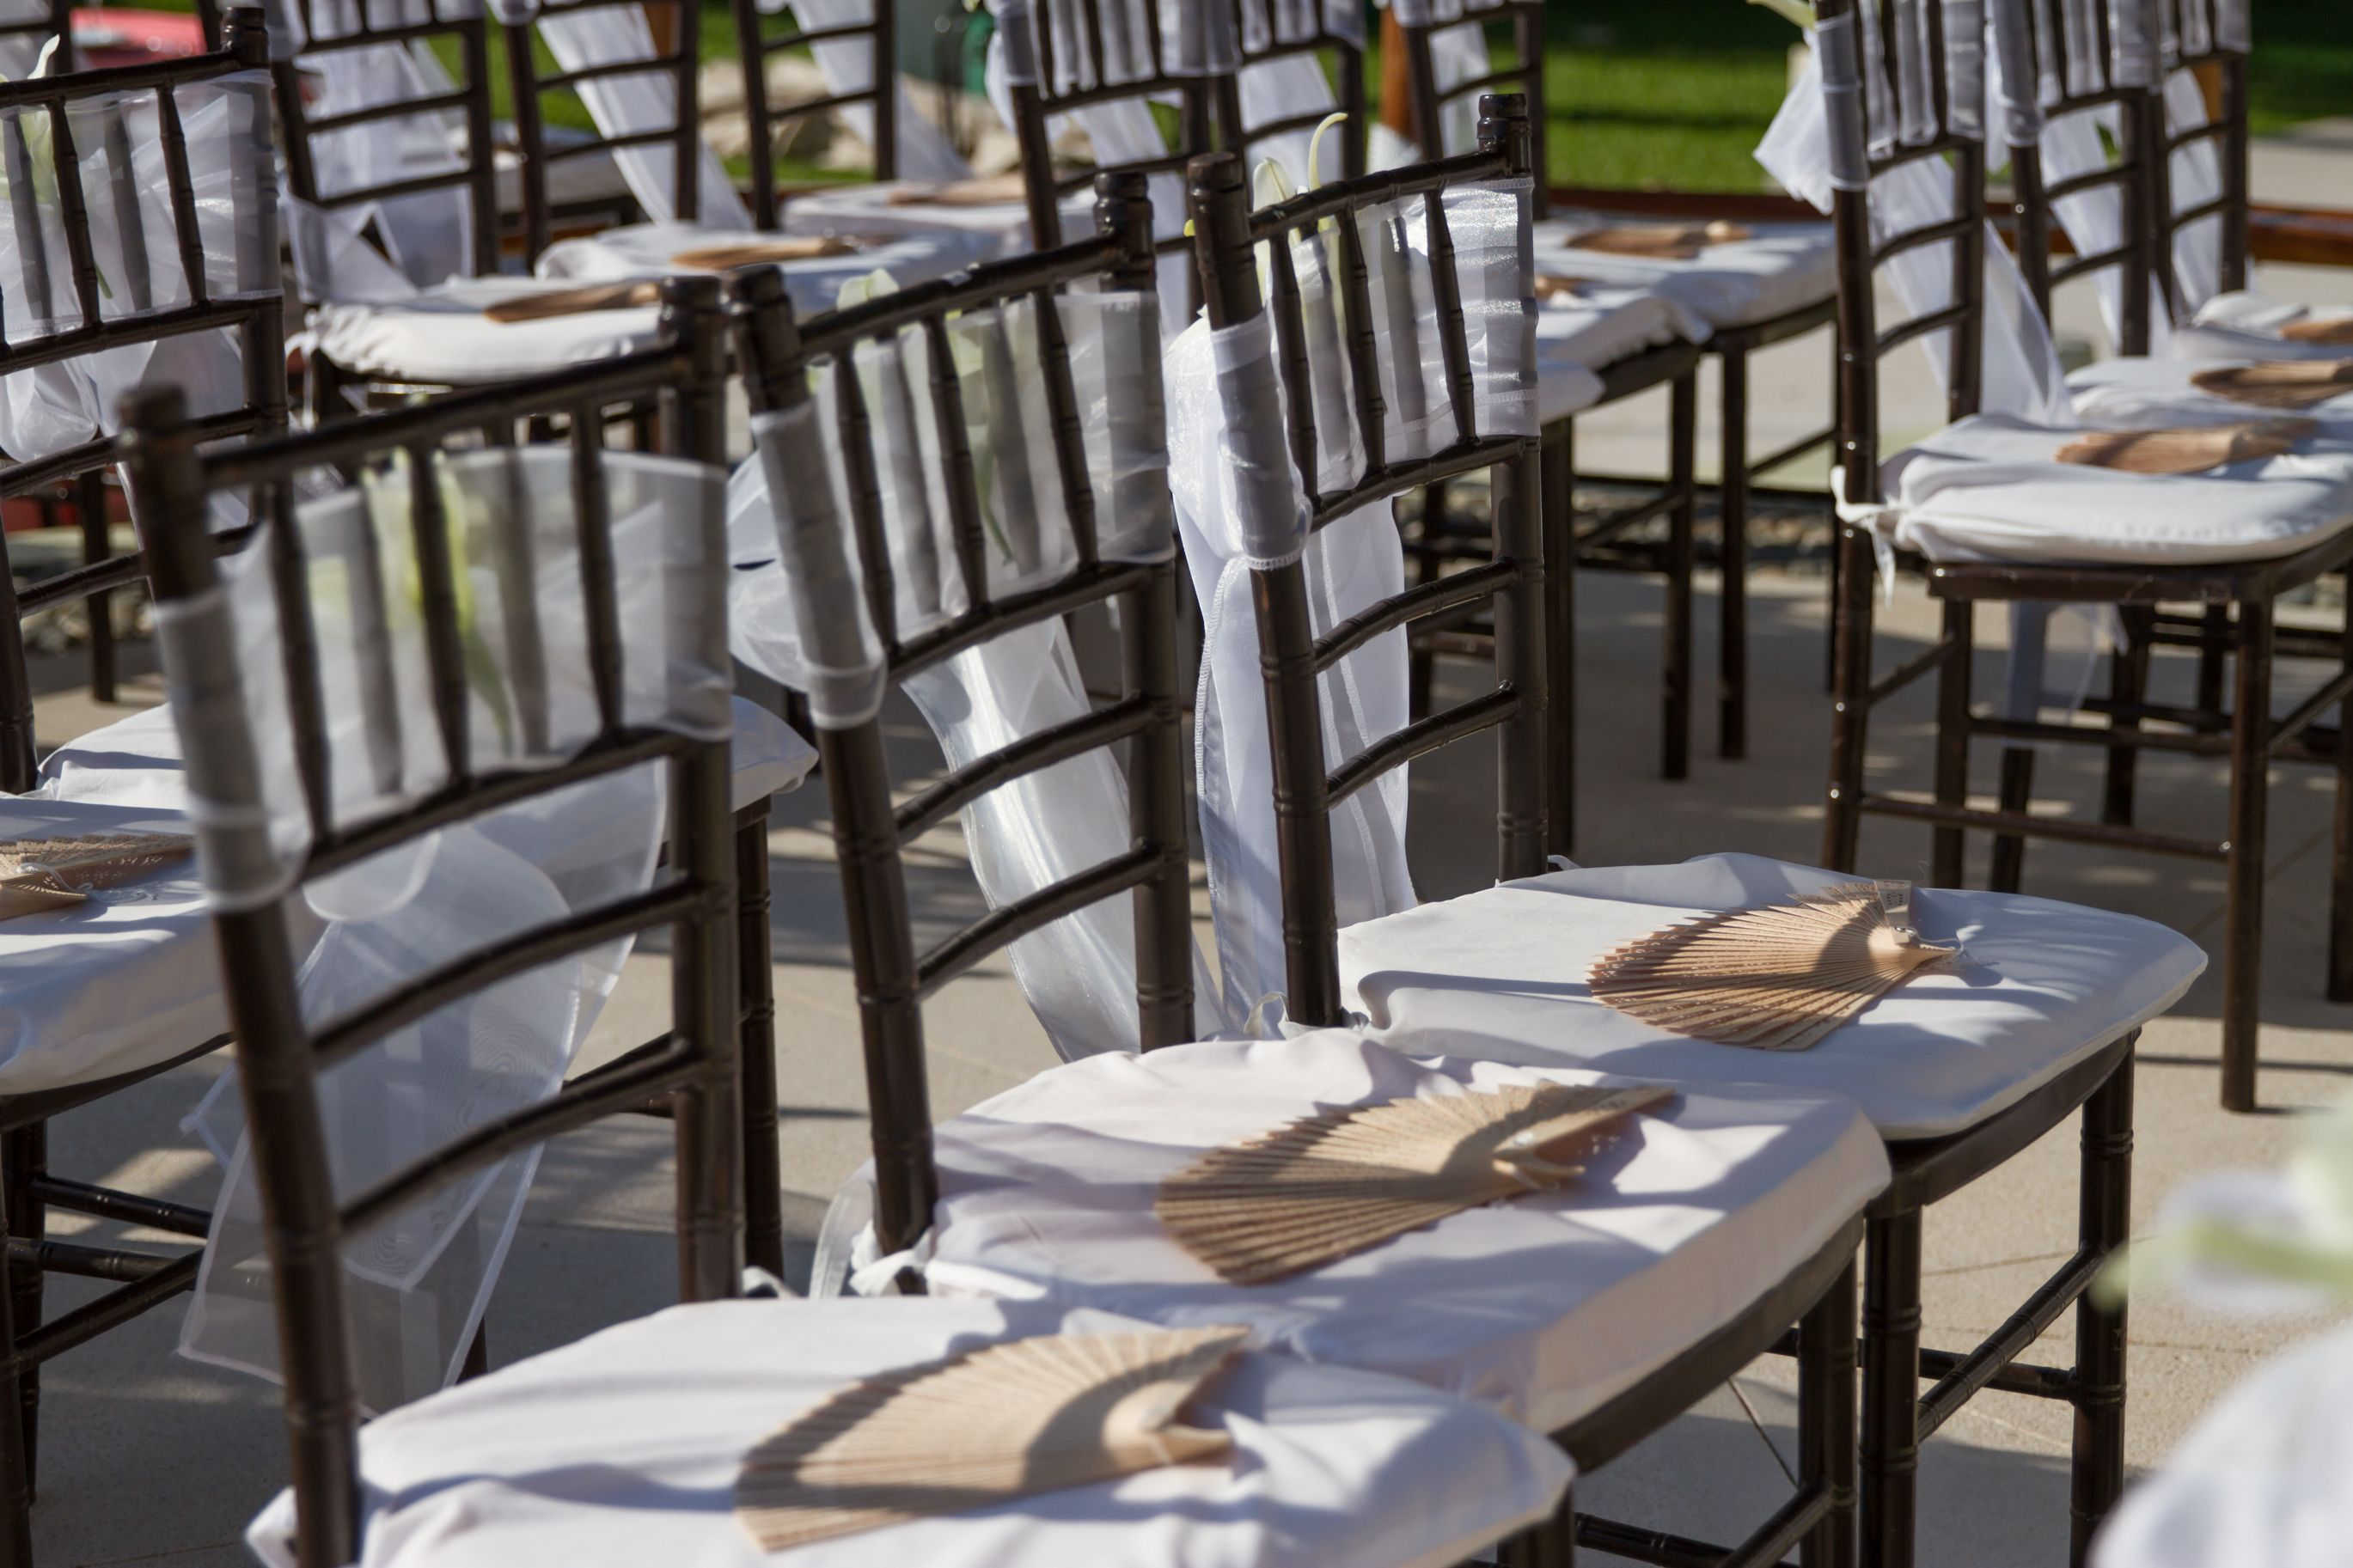 How To Keep Your Guests Comfy At Your Outdoor Wedding: Keep Your Guests Comfortable During Your Outdoor Ceremony